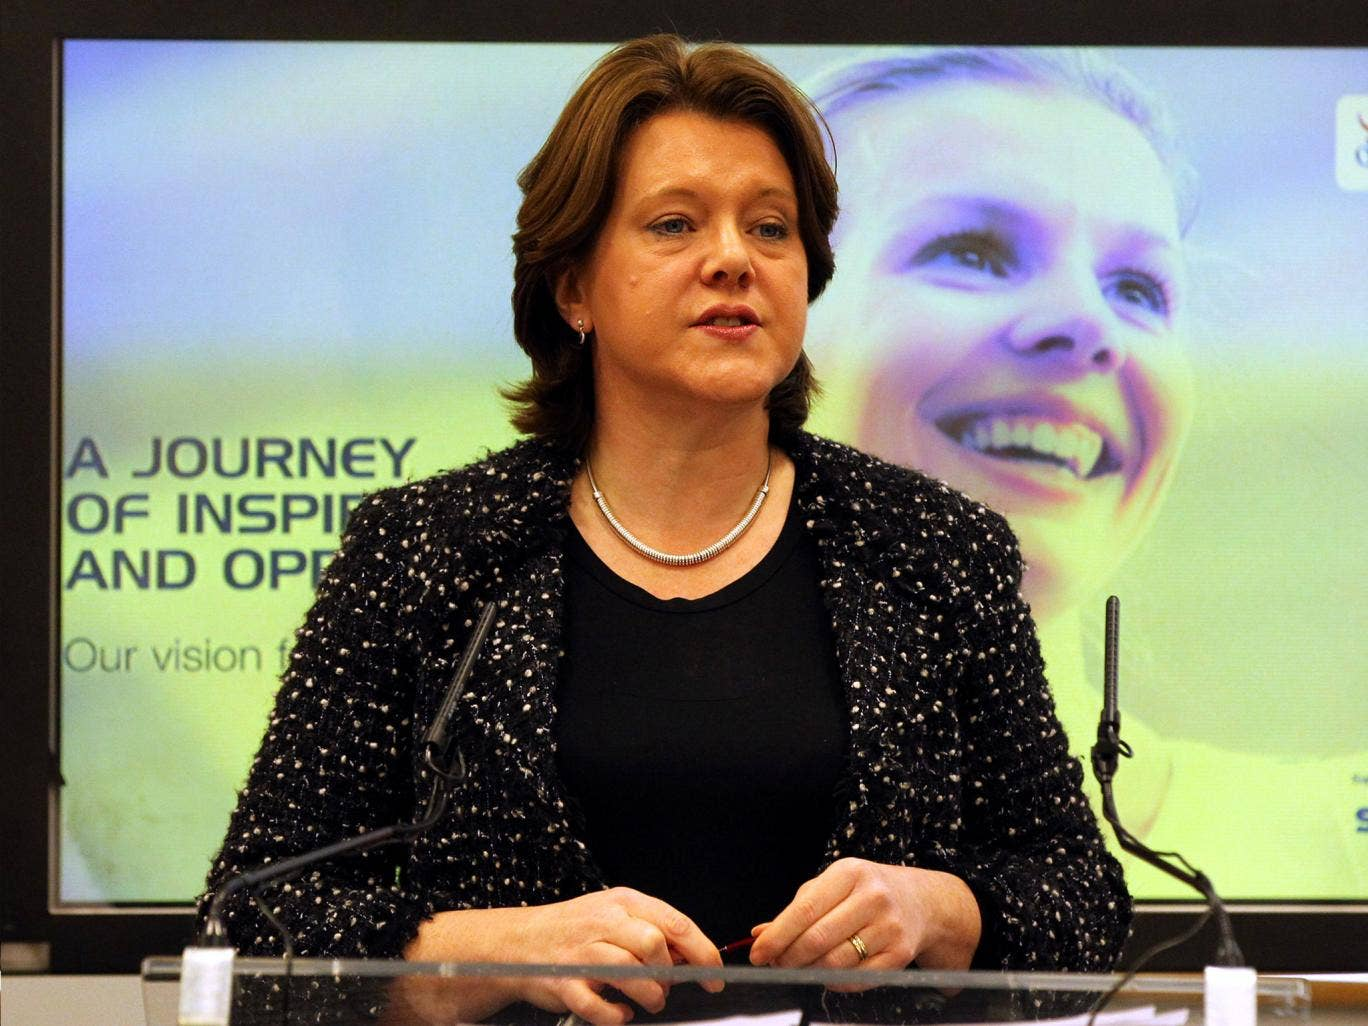 Maria Miller has pledged to improve representation of women